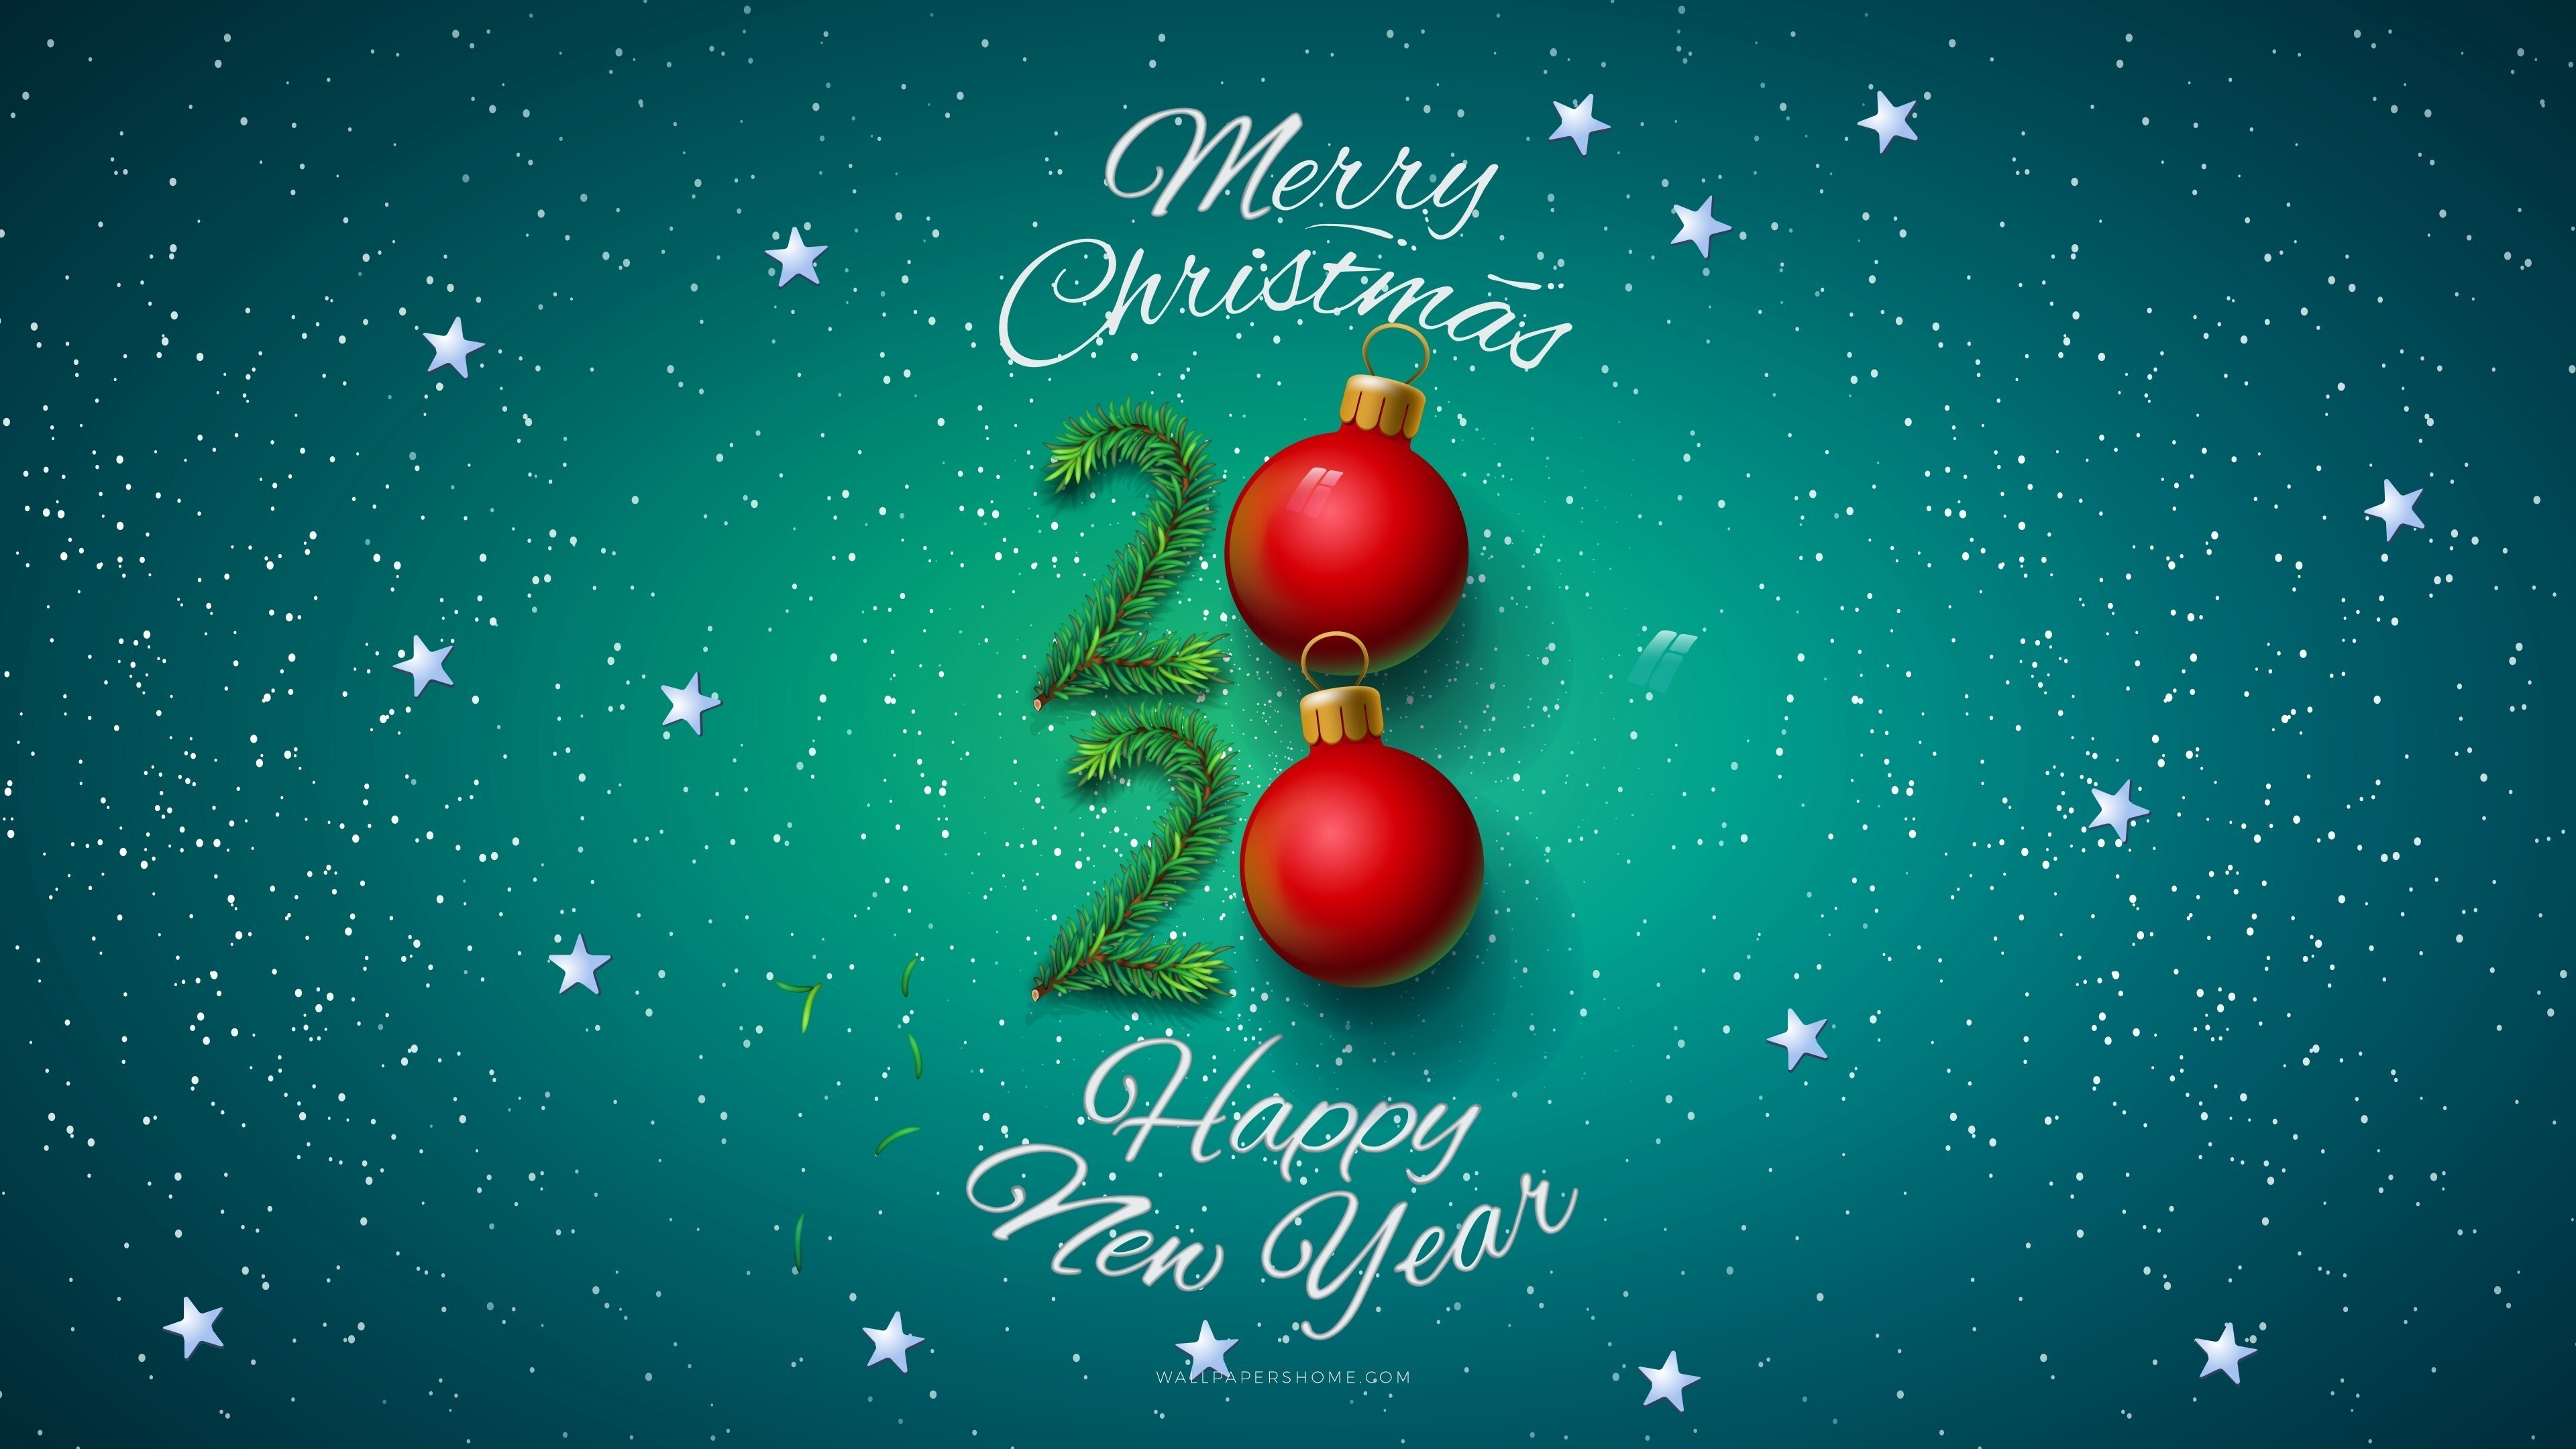 merry christmas with happy new year 2020 hd wallpapers merry christmas with happy new year